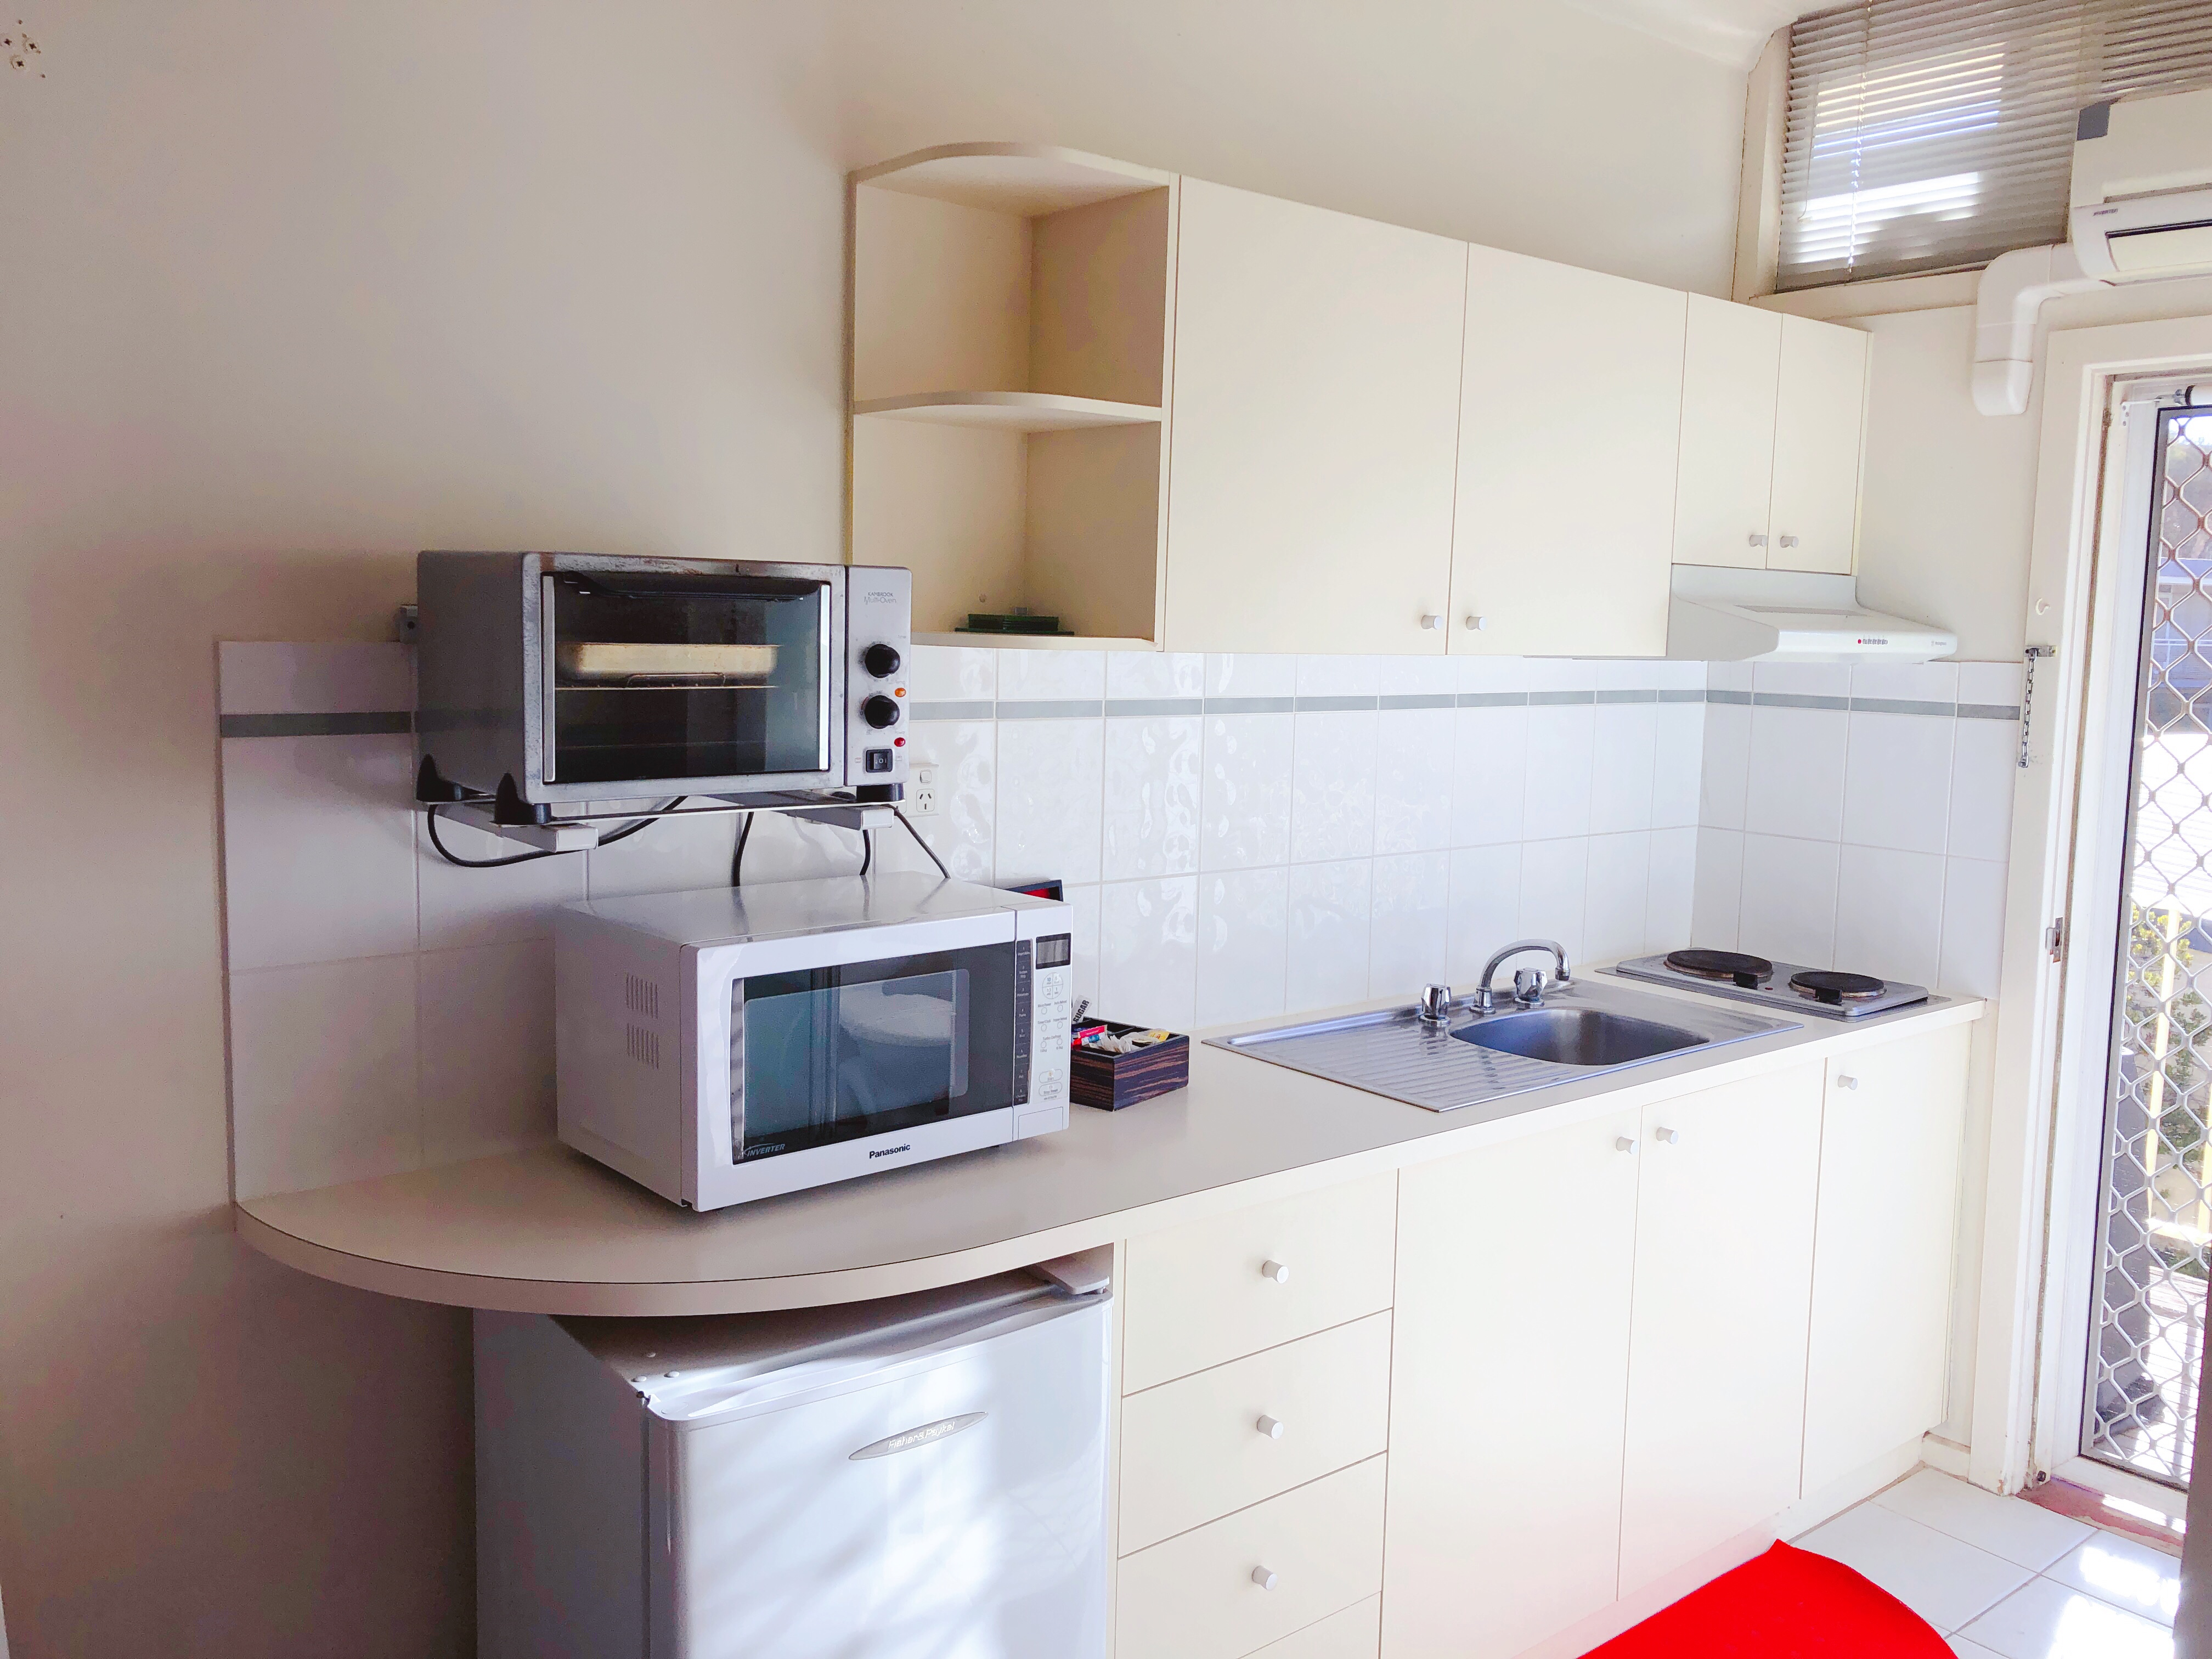 canberra short term holiday accommodation ACT kitchen kitchenette unit budget hotel stay